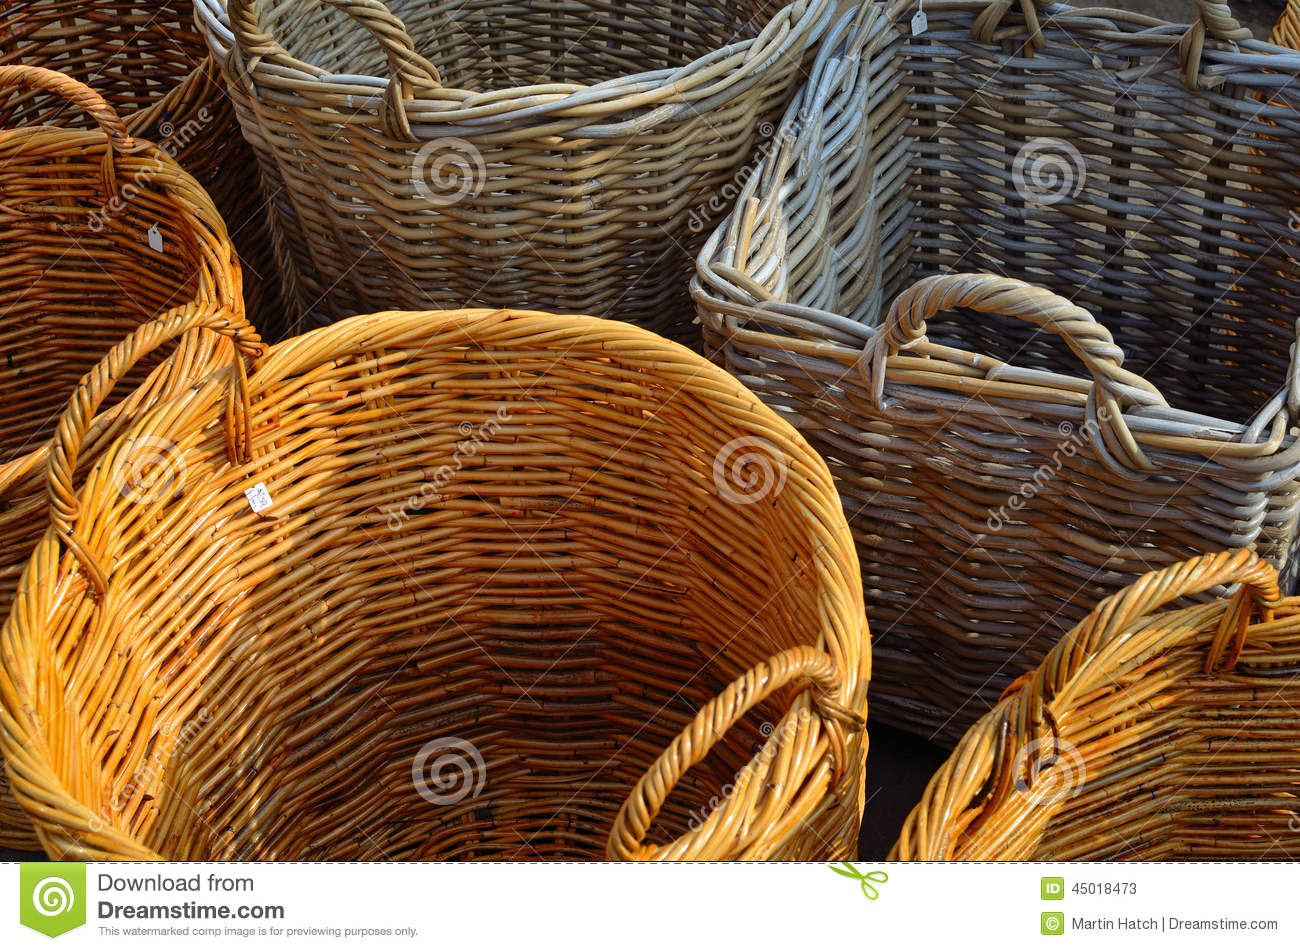 Animal Wicker Hamper Wicker Baskets Stock Photo Image 45018473